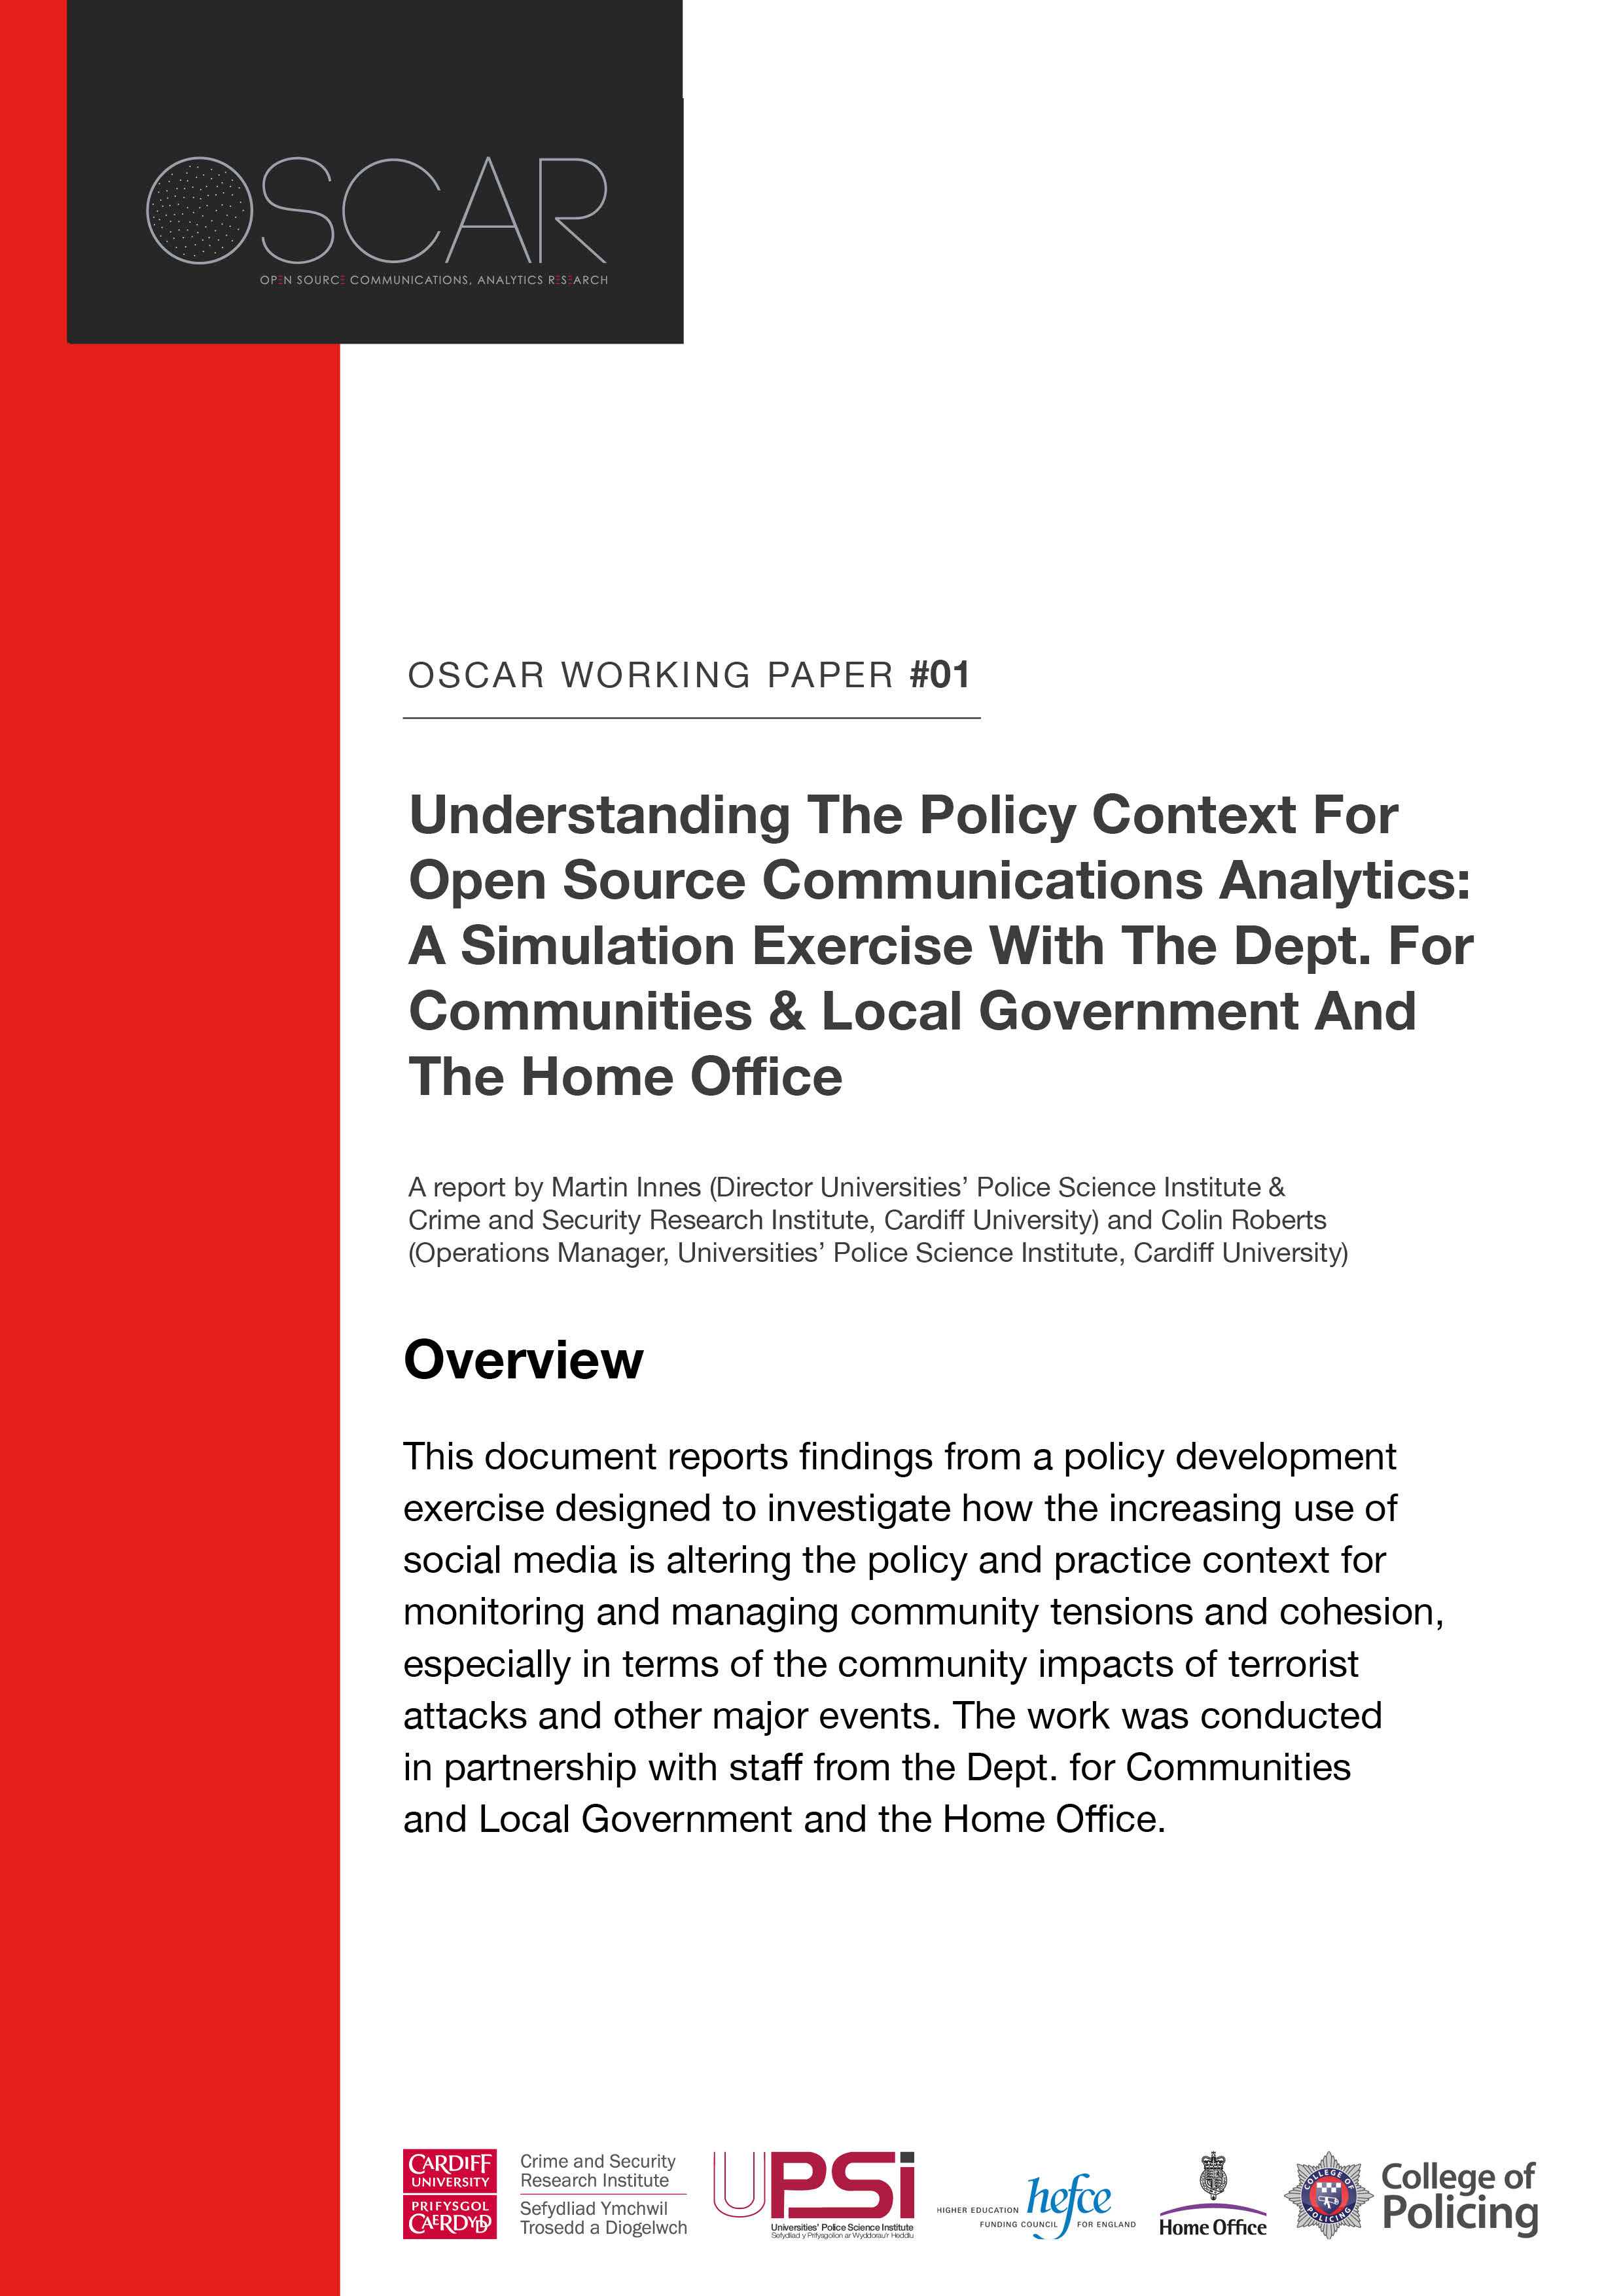 Understanding The Policy Context For Open Source Communications Analytics: A Simulation Exercise With The Dept. For Communities & Local Government And The Home Office